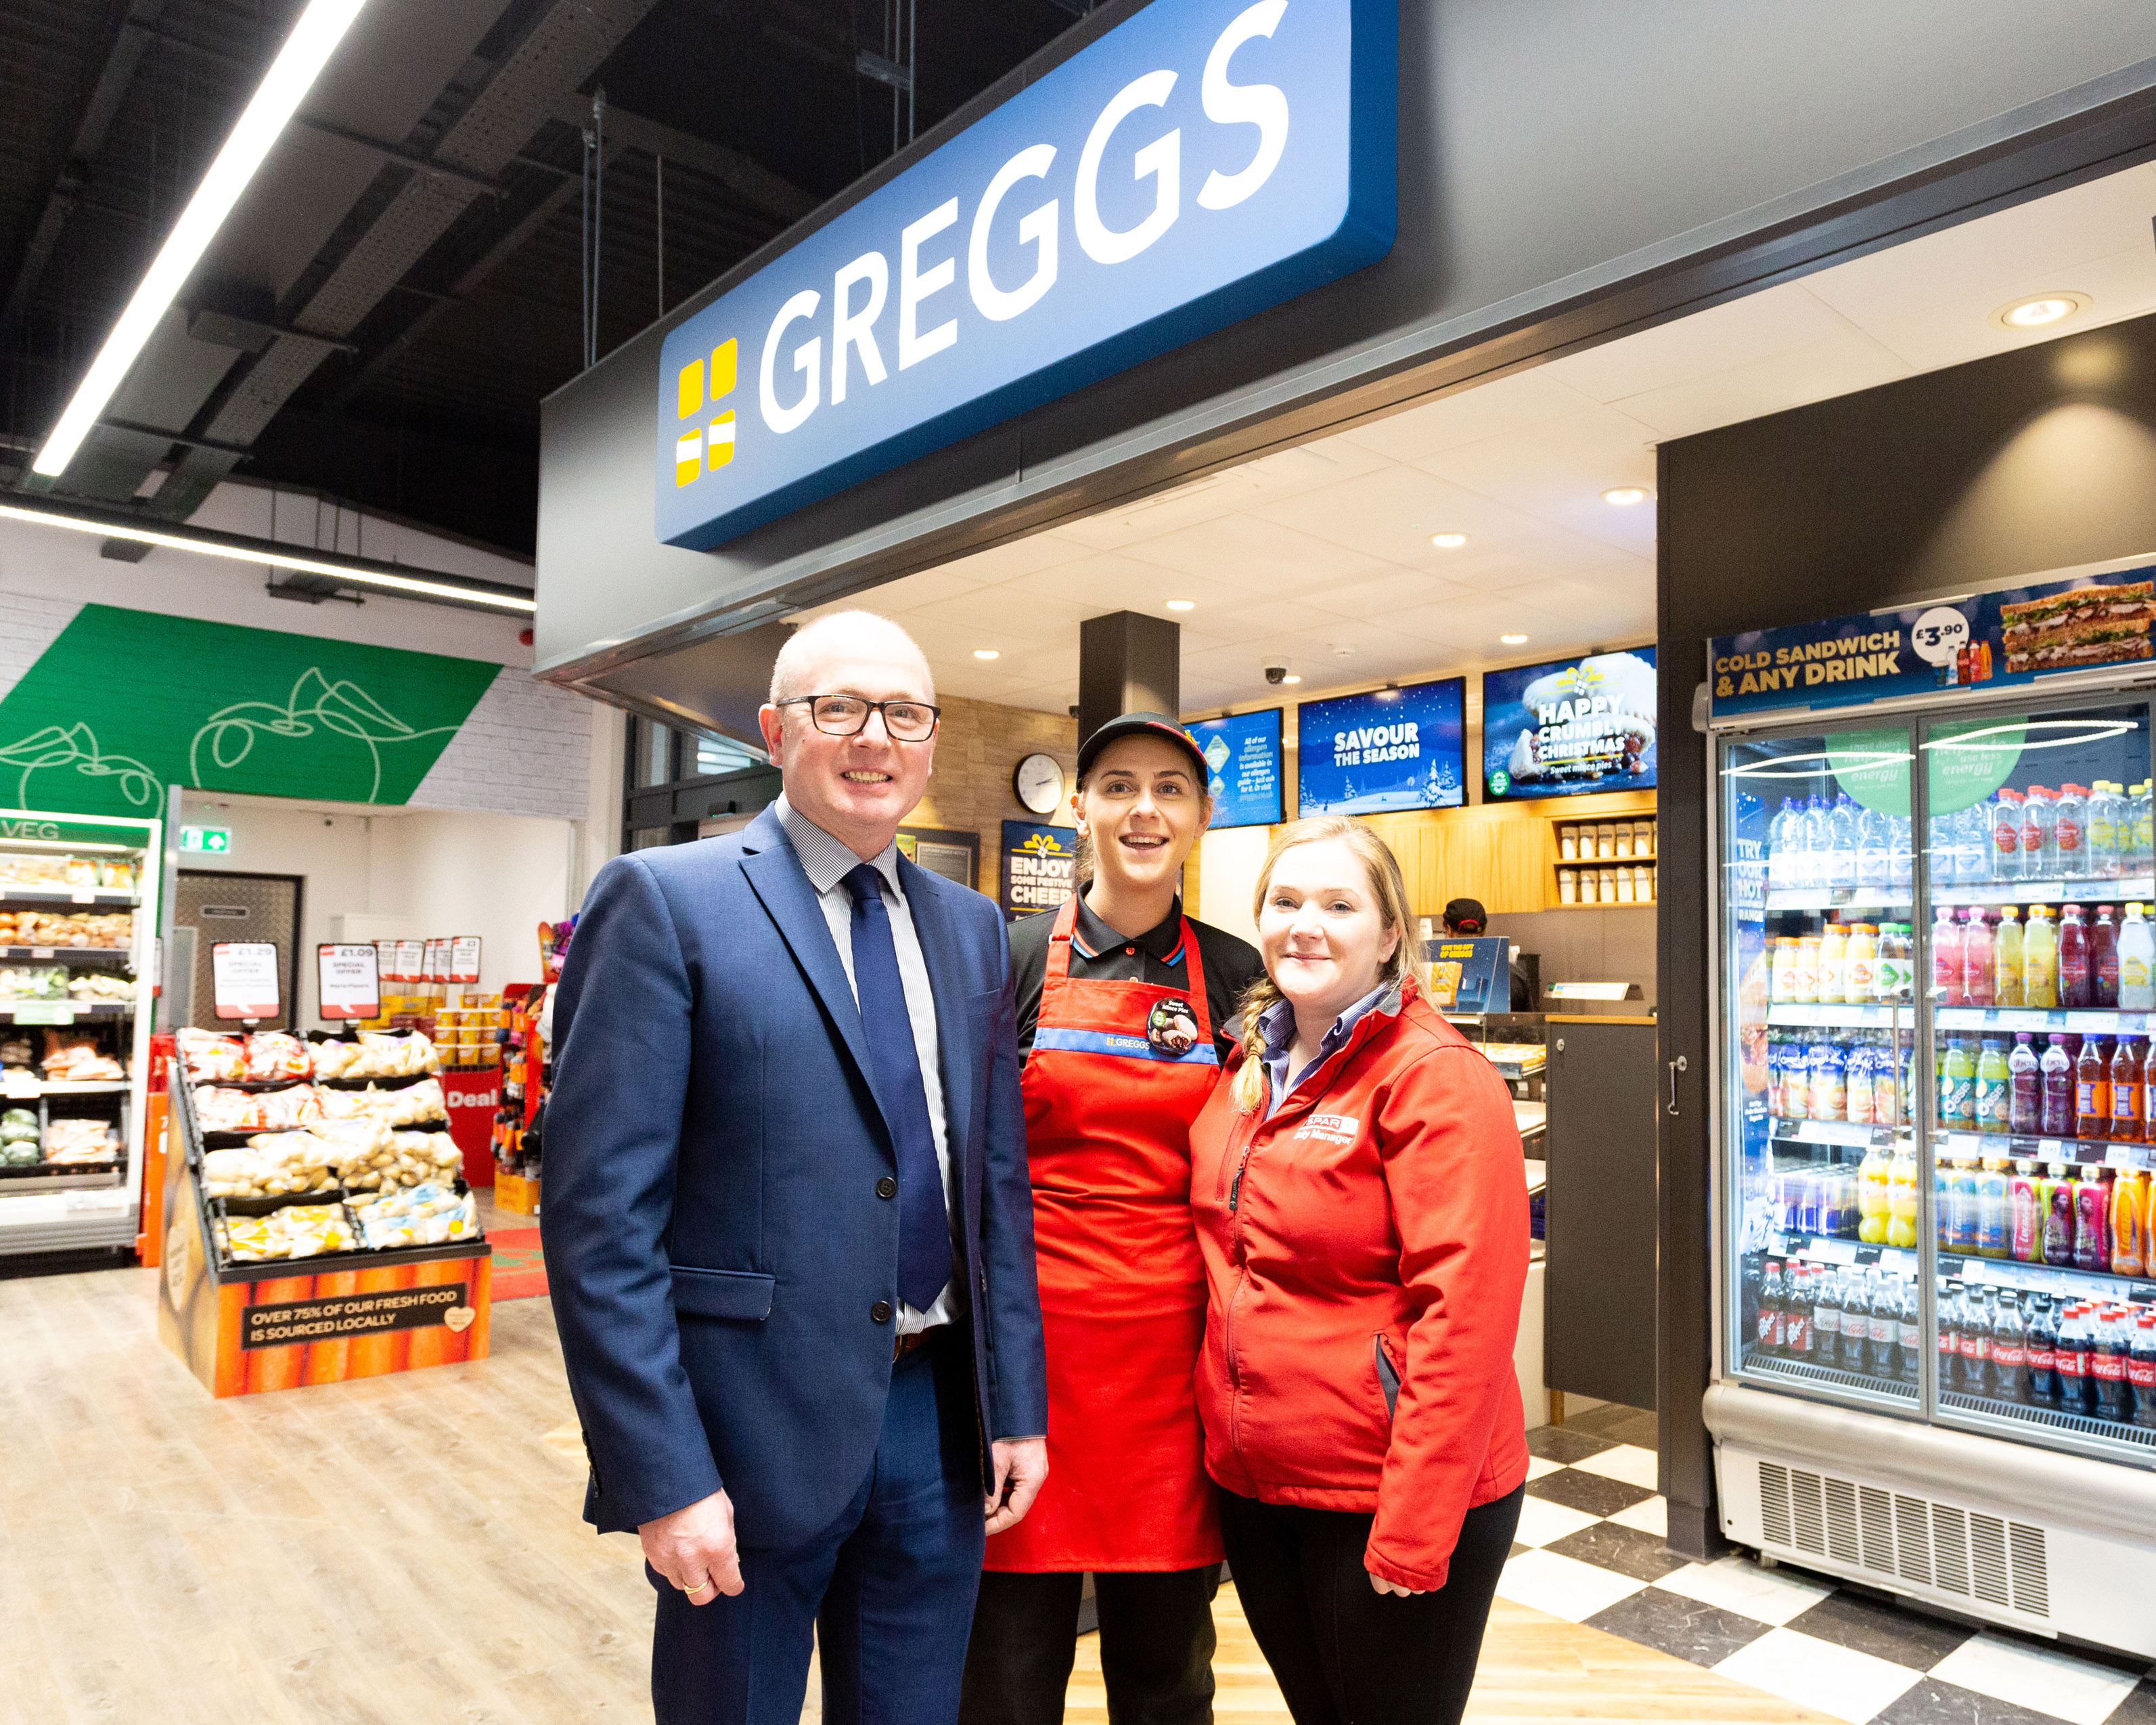 Henderson Retail partners with Greggs to open first shop within SPAR NI store